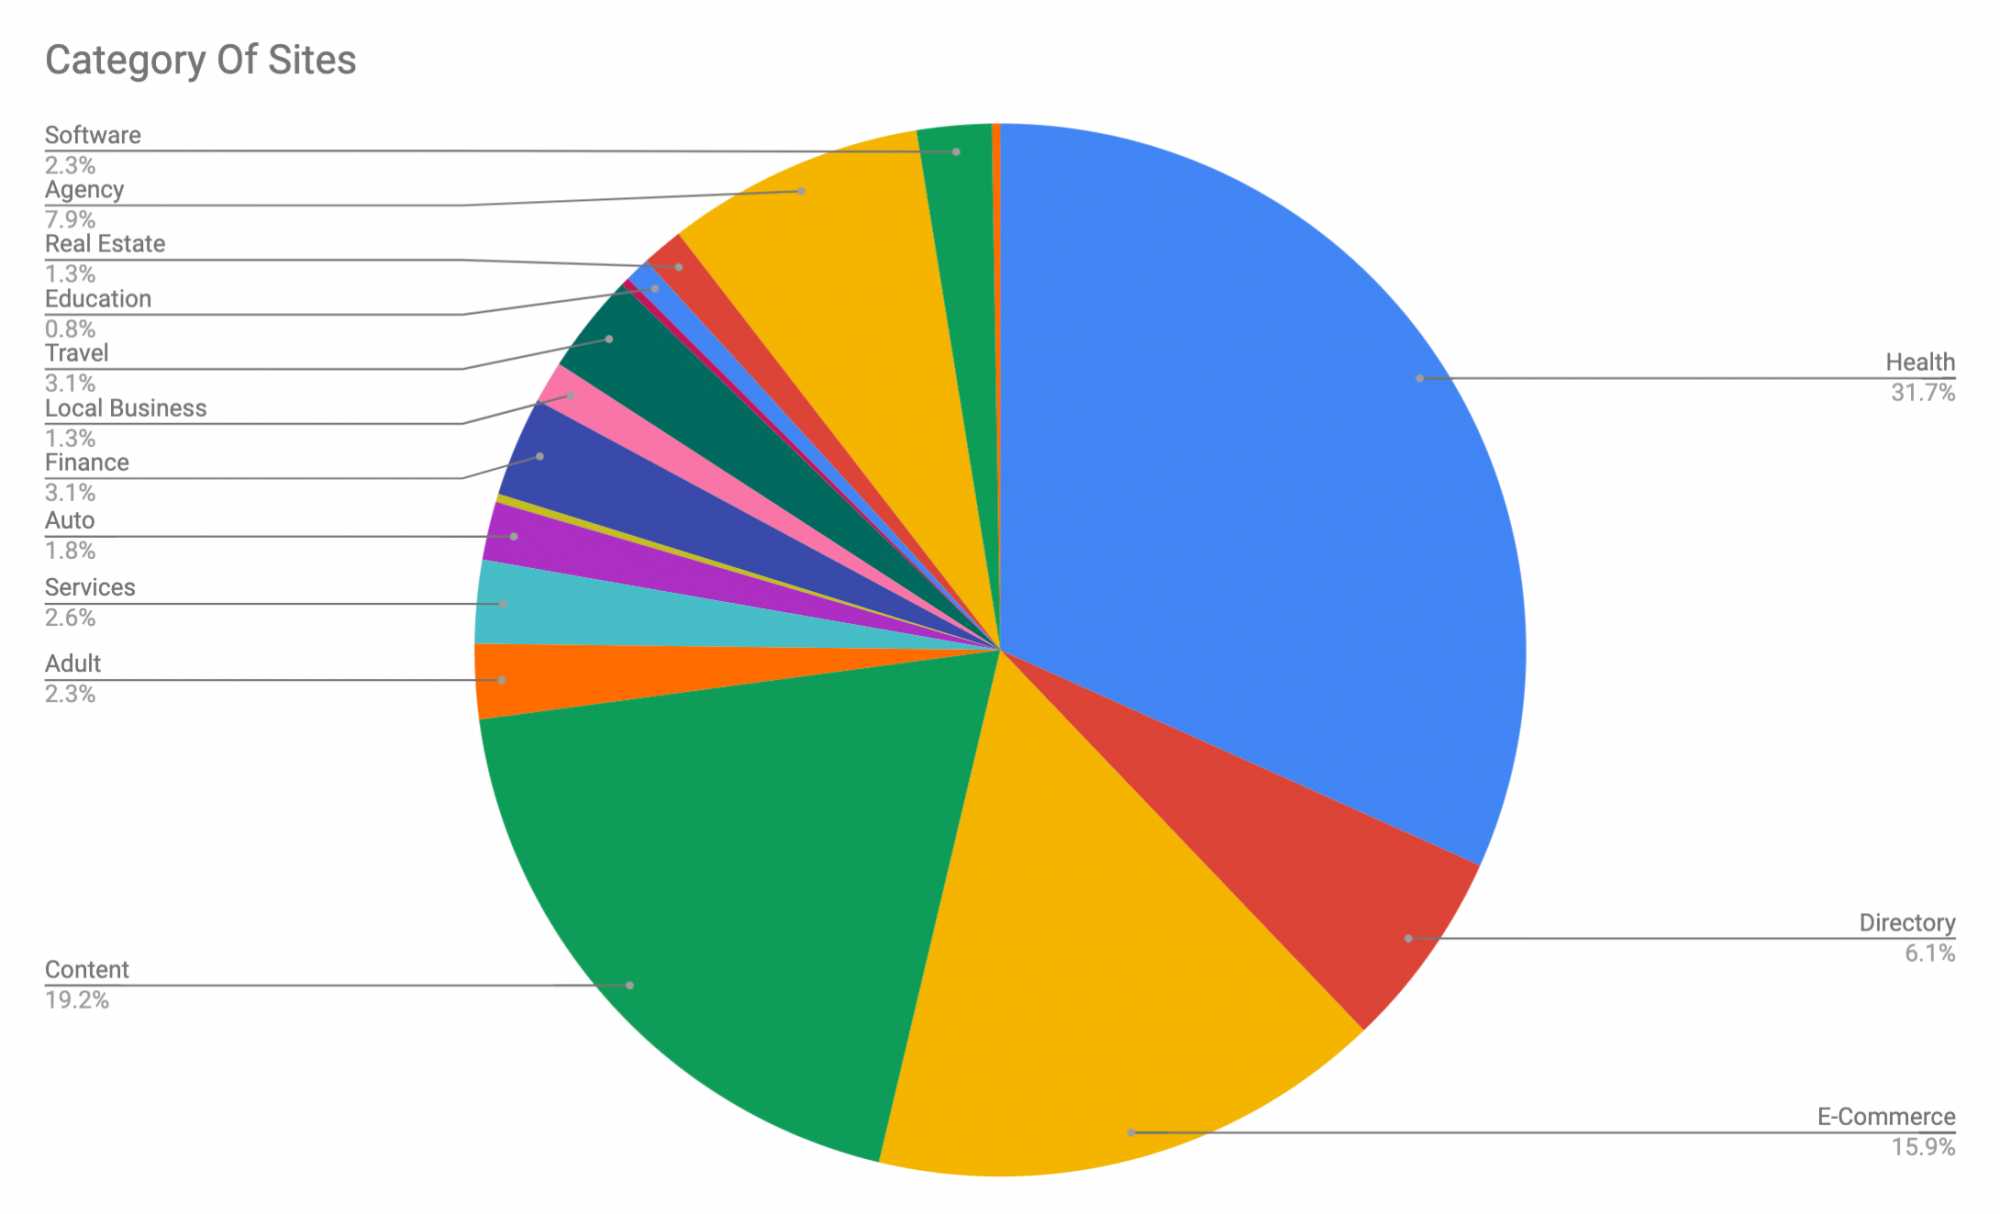 google core update categories survey march 2019